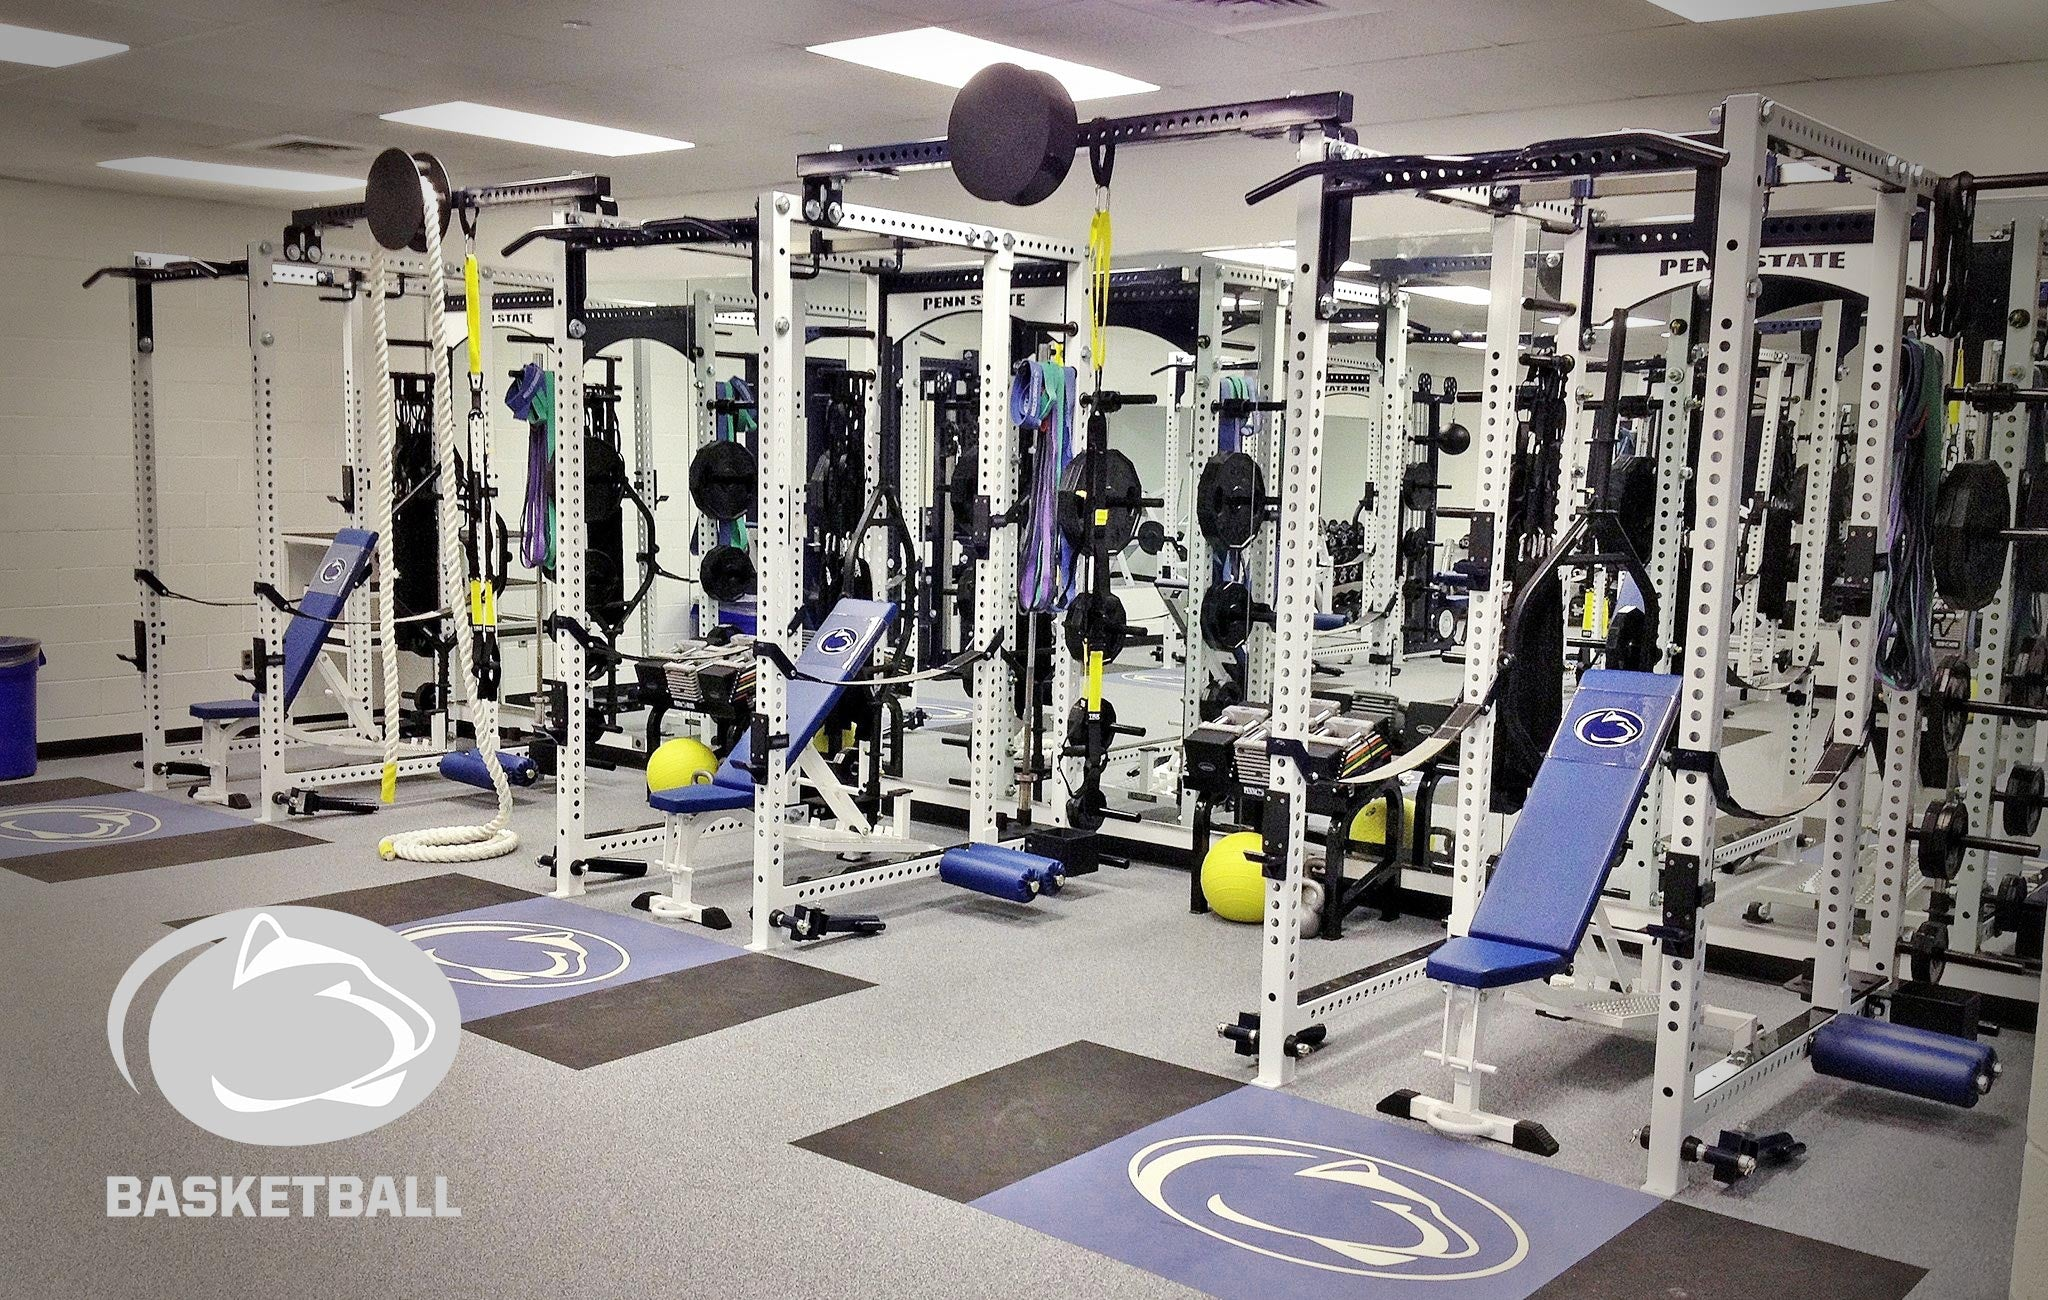 Penn State basketball University Sorinex strength and conditioning facility